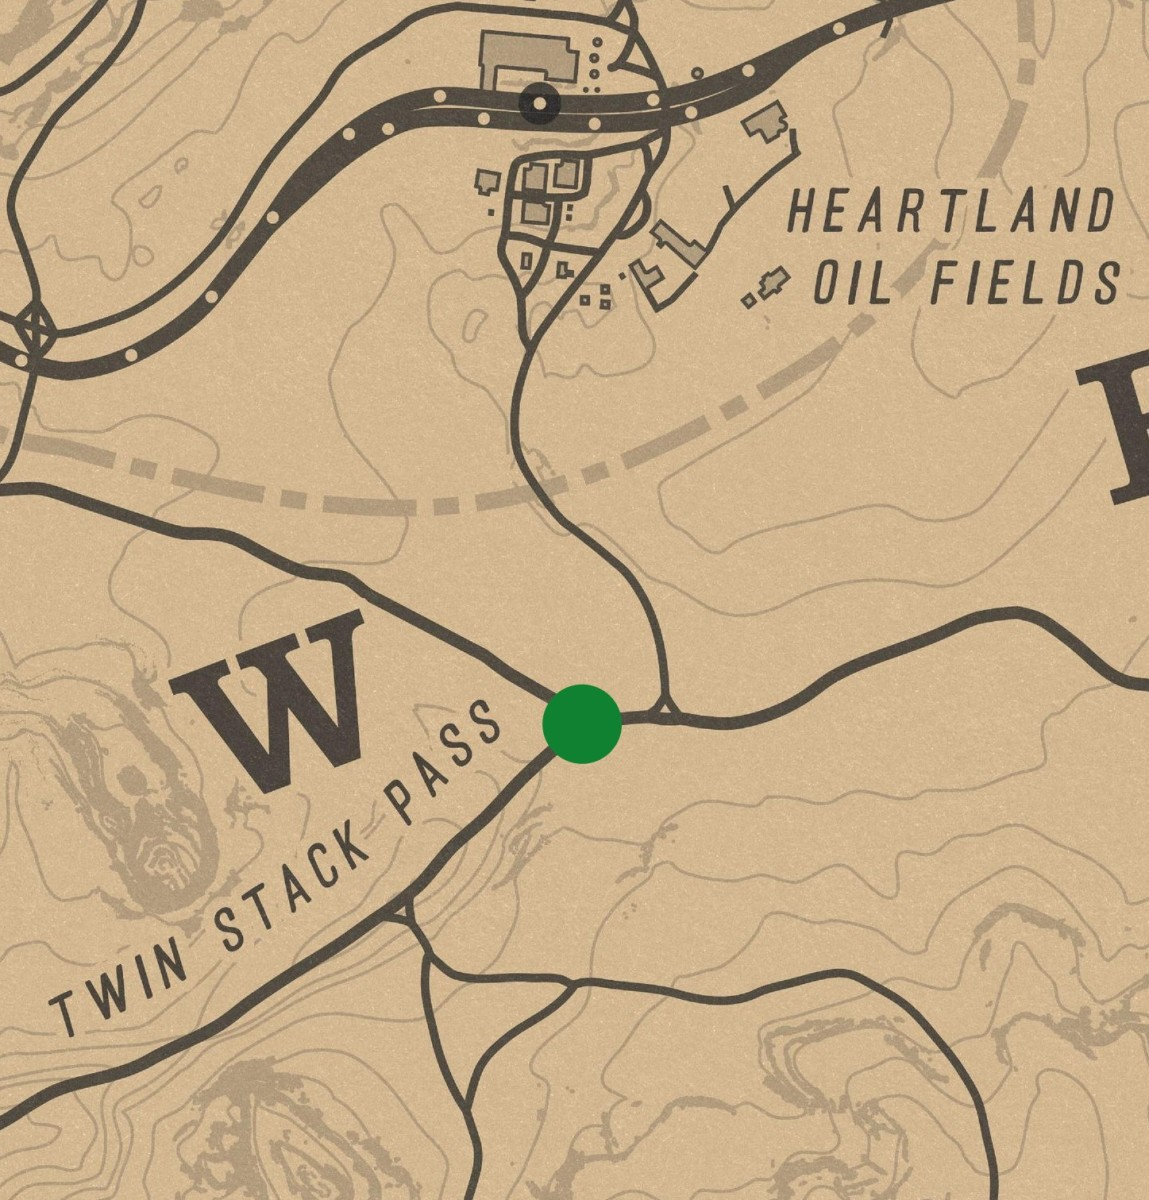 Prairie Chickens can be found at the crossroads with the green dot. This is honestly the only known spot I can think of.